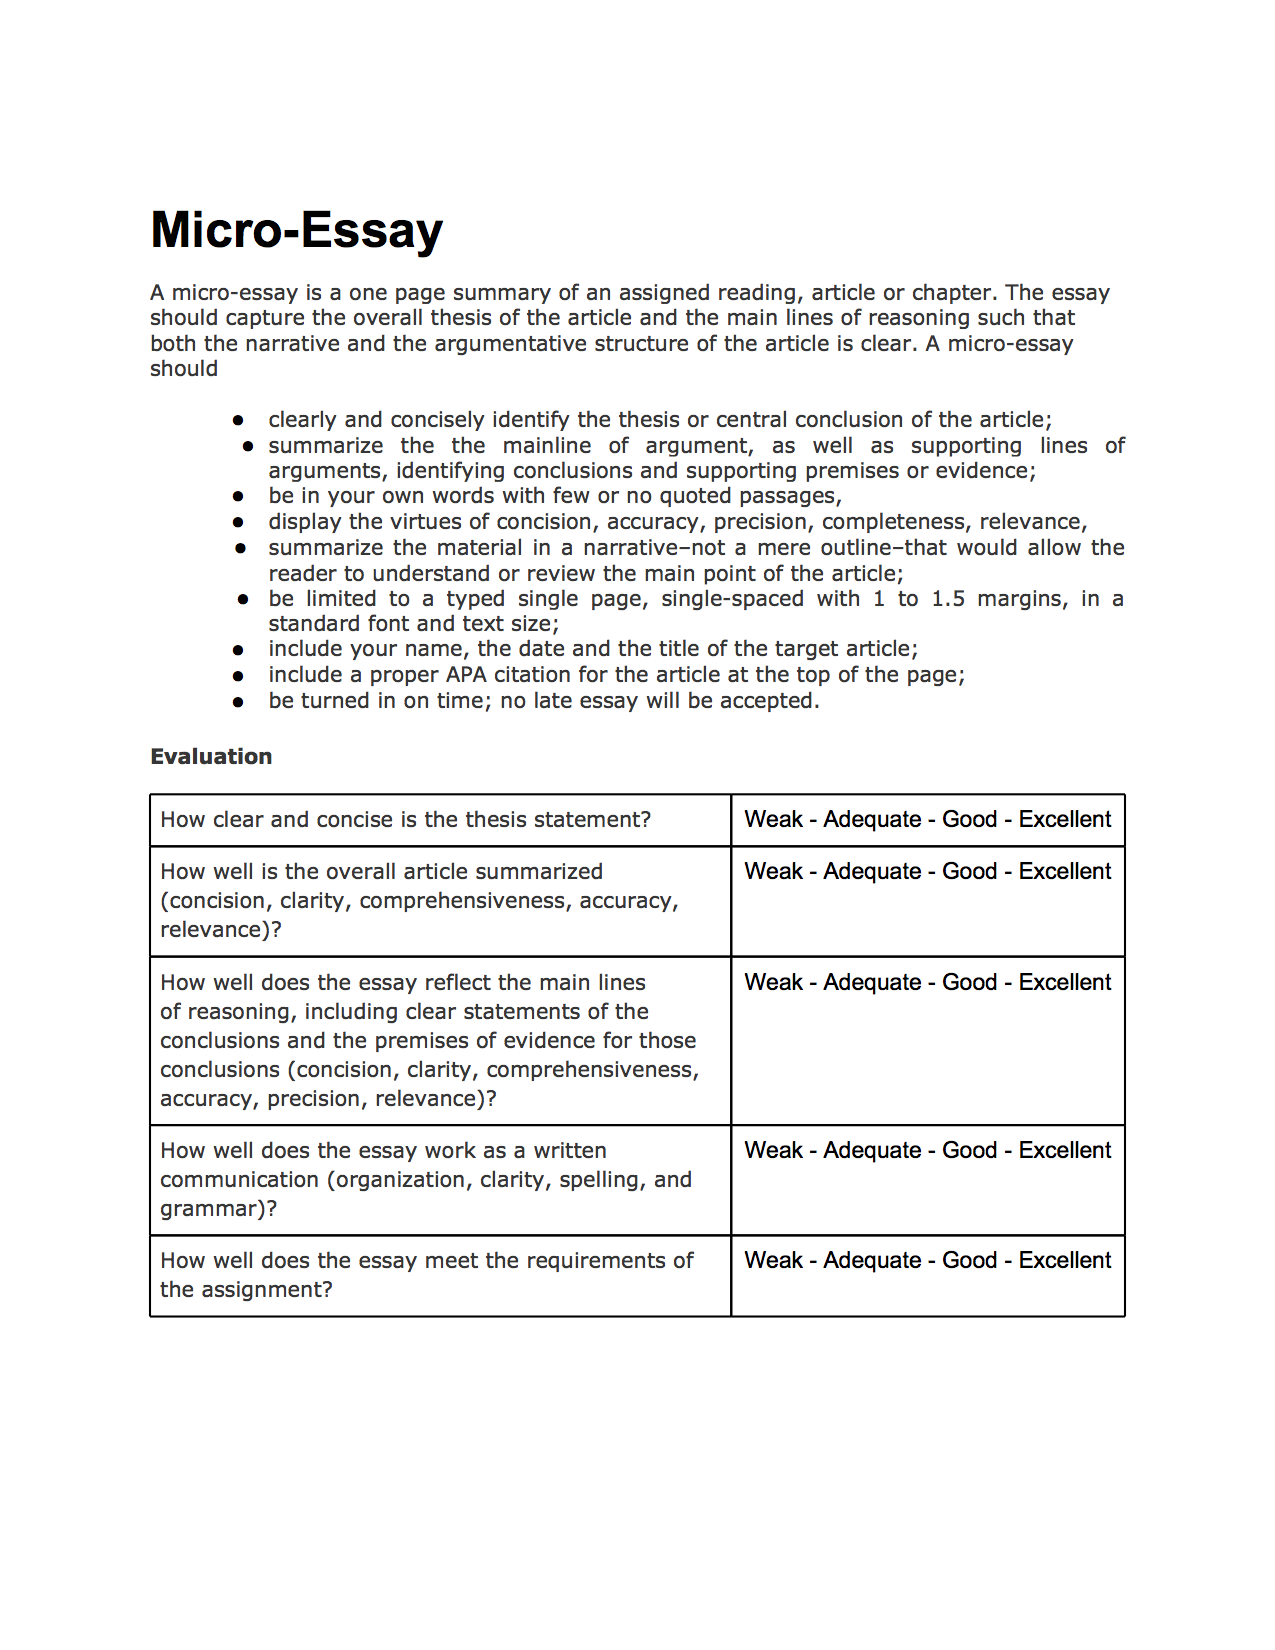 Examples Of Proposal Essays Microessays Argumentative Essay Proposal also Argumentative Essay Thesis Microessays Darwin And Philosophy How To Use A Thesis Statement In An Essay